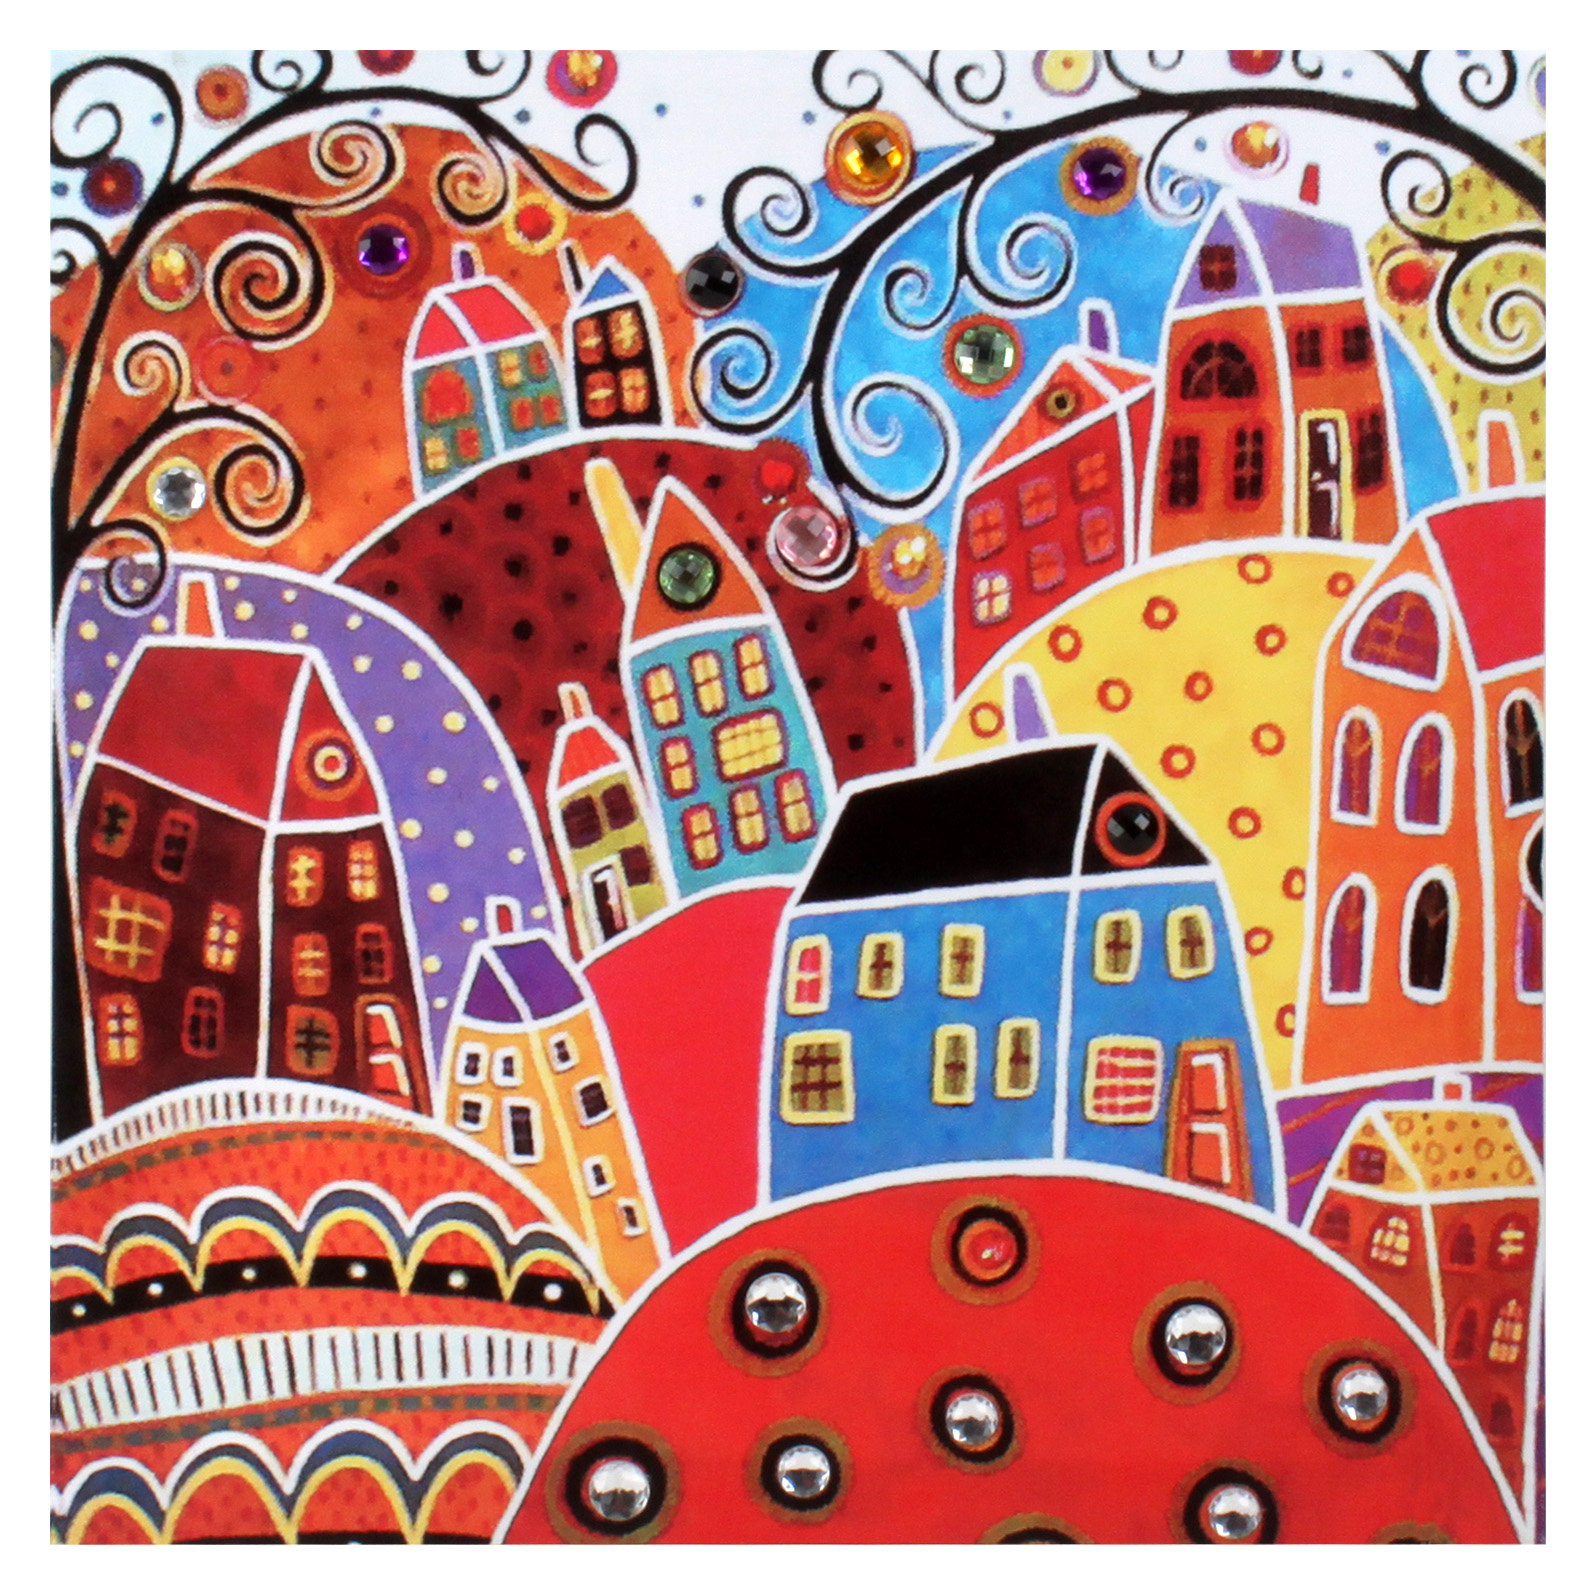 €15 WALL PAINTING PRINTED CANVAS W/STONES 40X2X40